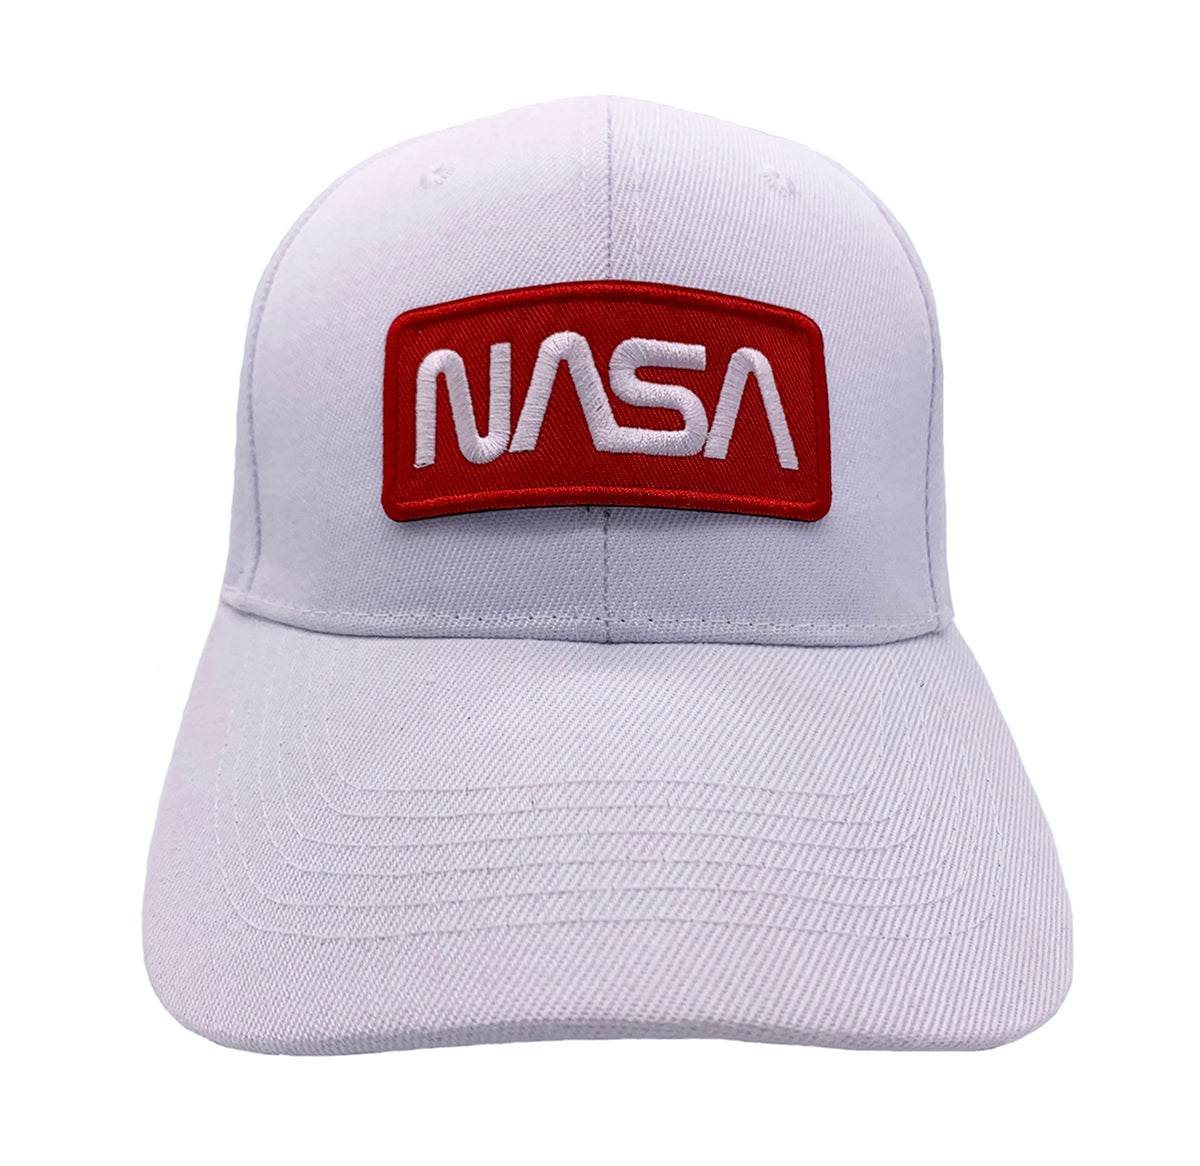 CORIRESHA NASA Logo Embroidered Cap